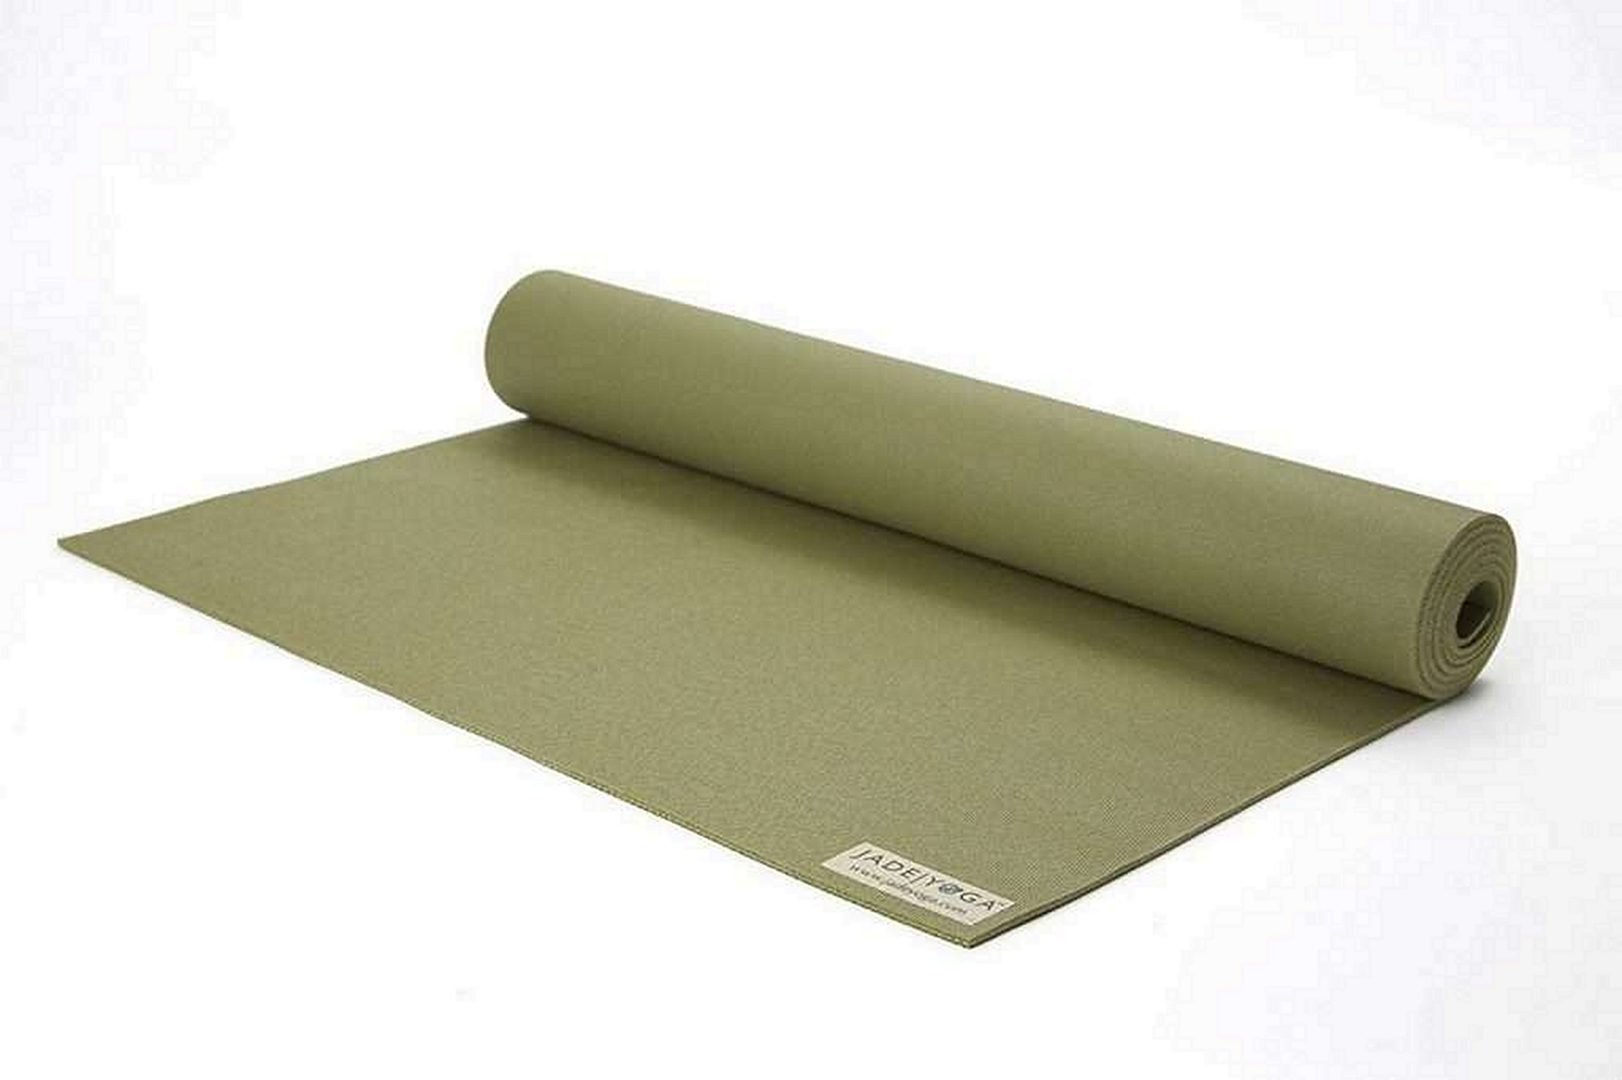 JODREAM Natural Rubber Eco-Friendly Yoga Mat, green